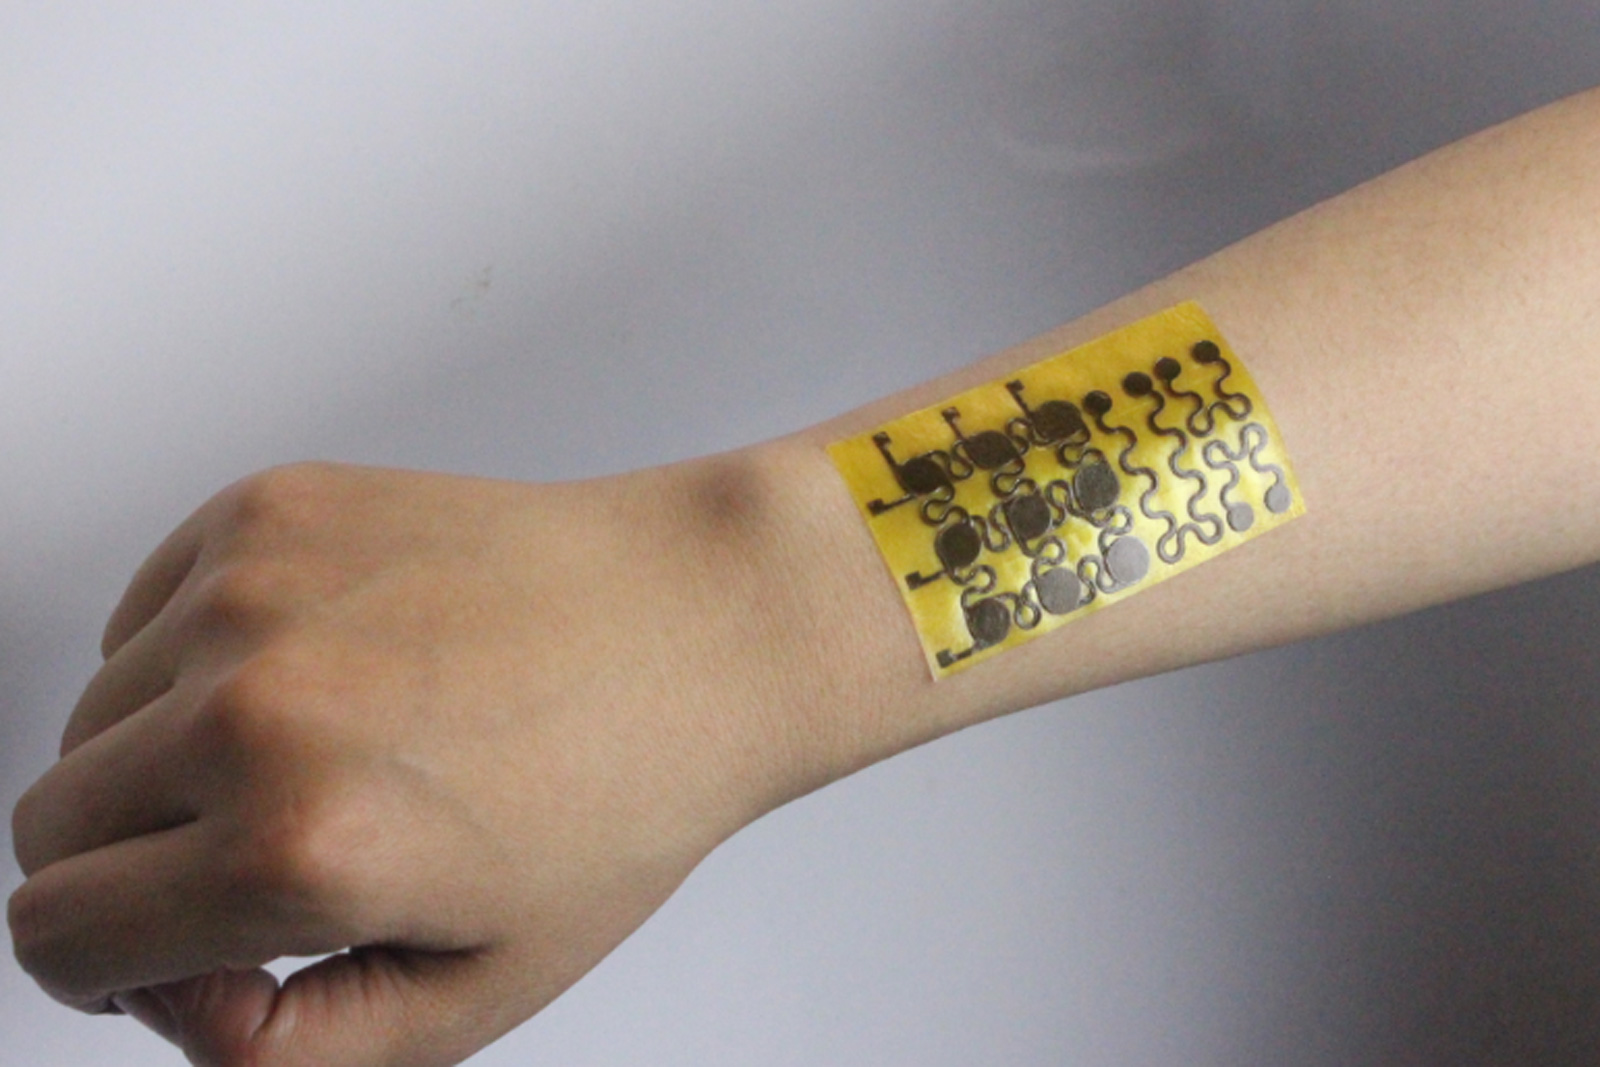 Rugged e skin can heal its cuts and scrapes aivanet for Artificial skin for tattooing